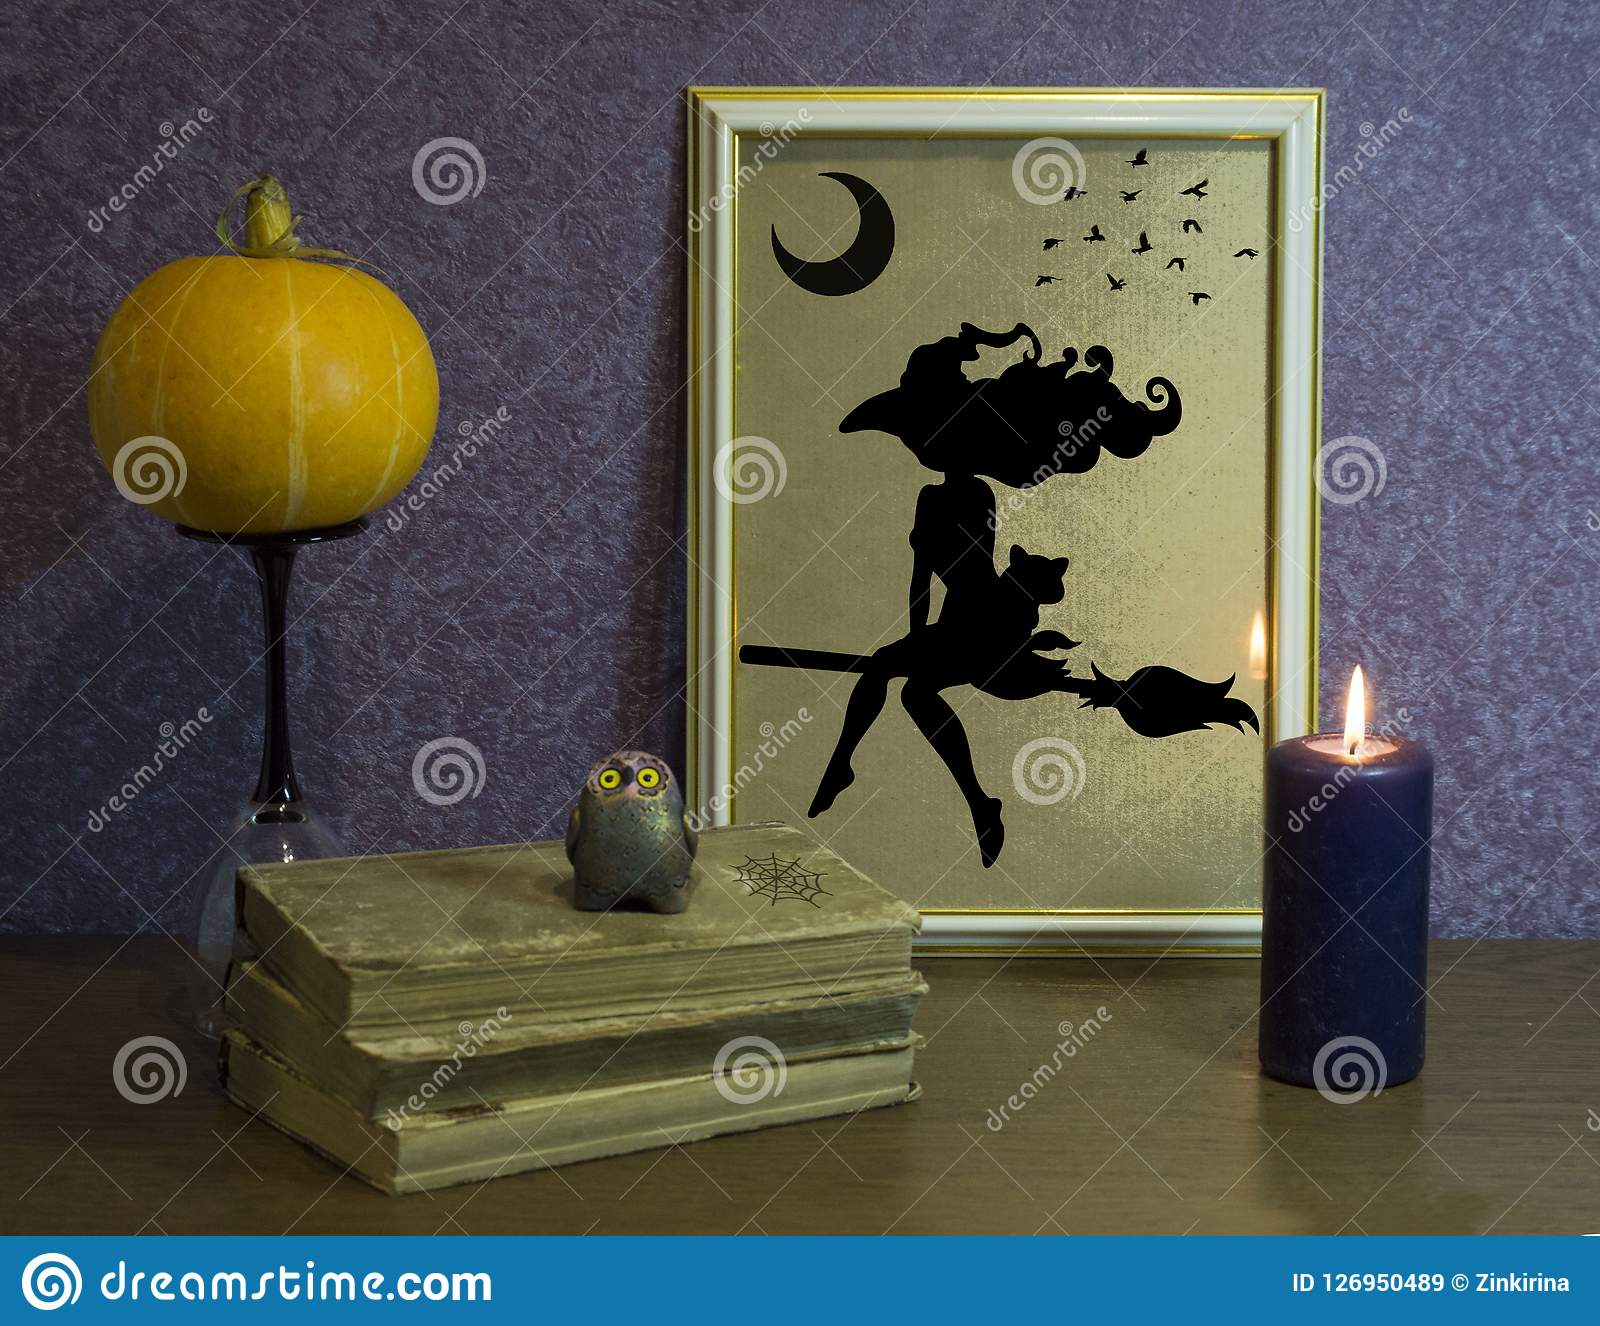 Halloween pumpkin. The book of arcane magic. Frame and burning candle.